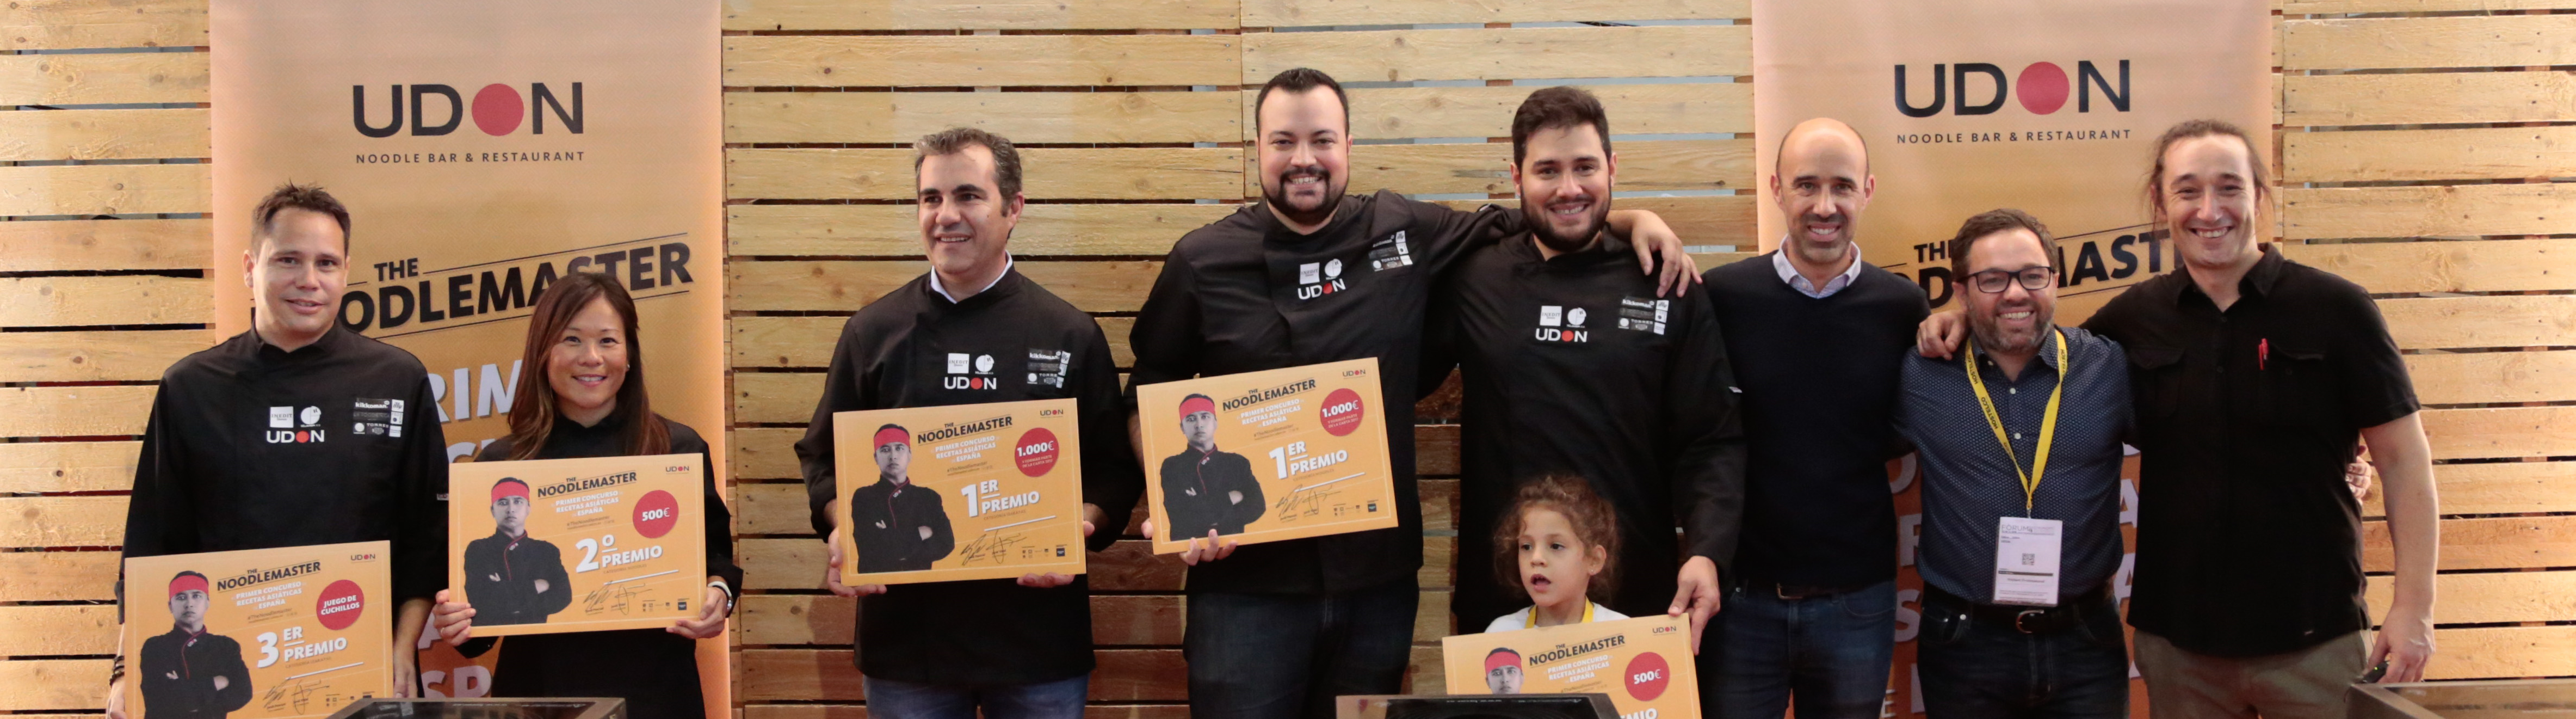 Us presentem els primers Noodlemasters d'Espanya!